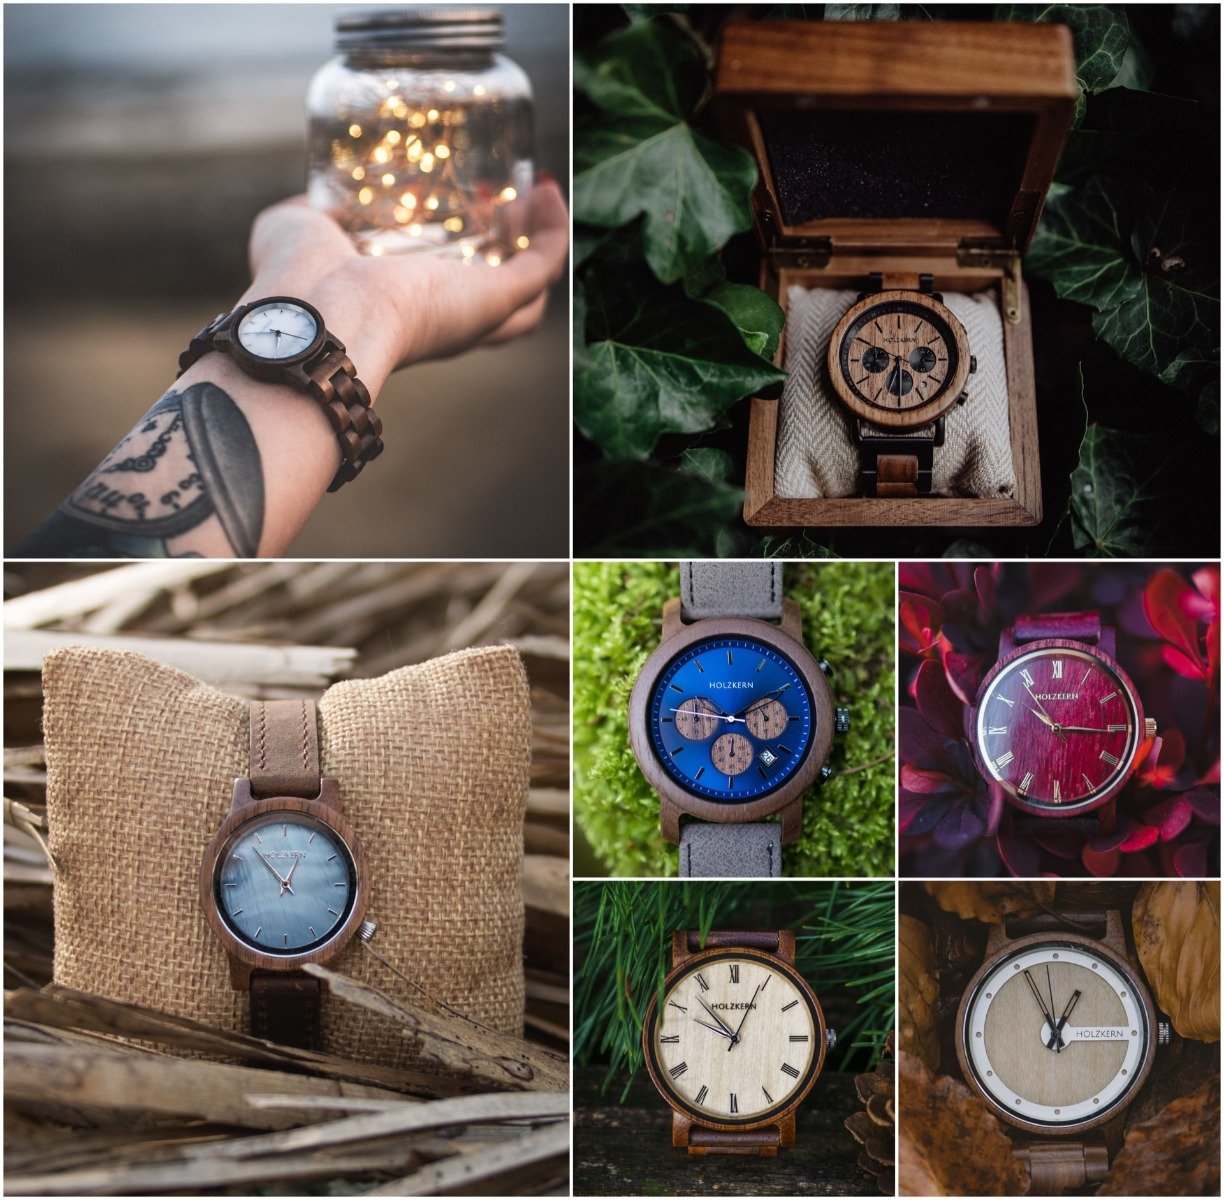 Watches of Holzkern